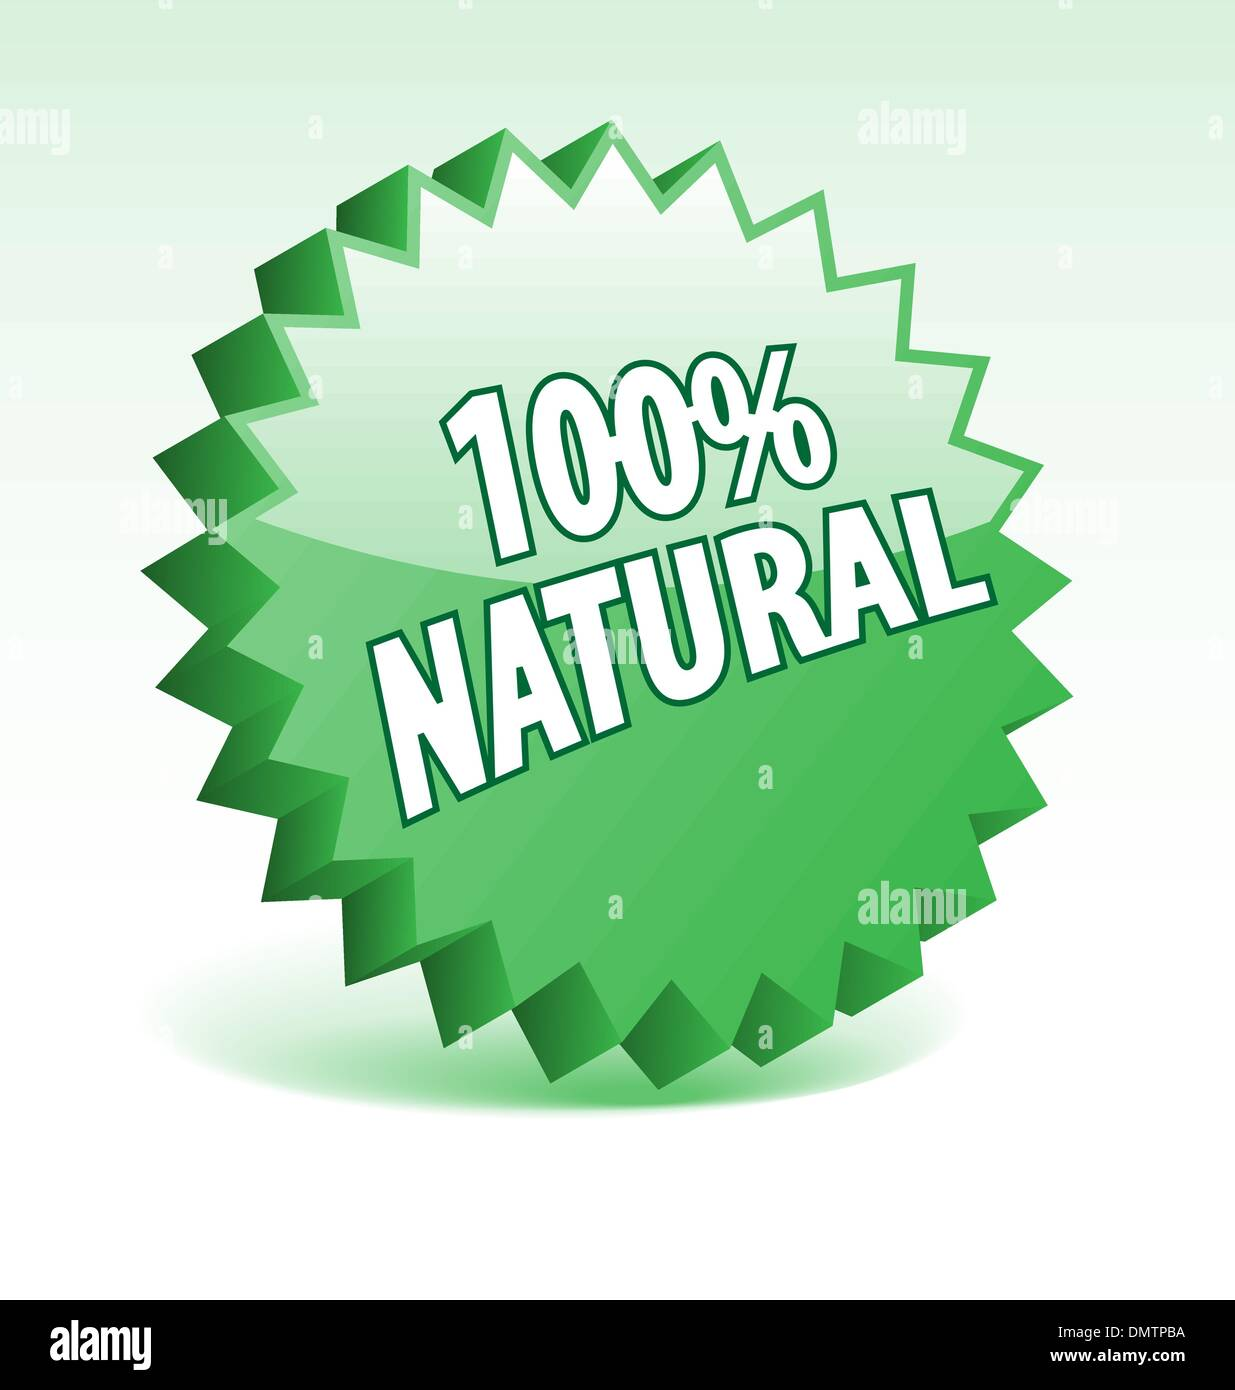 3D green vector badge for promotion, marketing, advertisement. - Stock Image